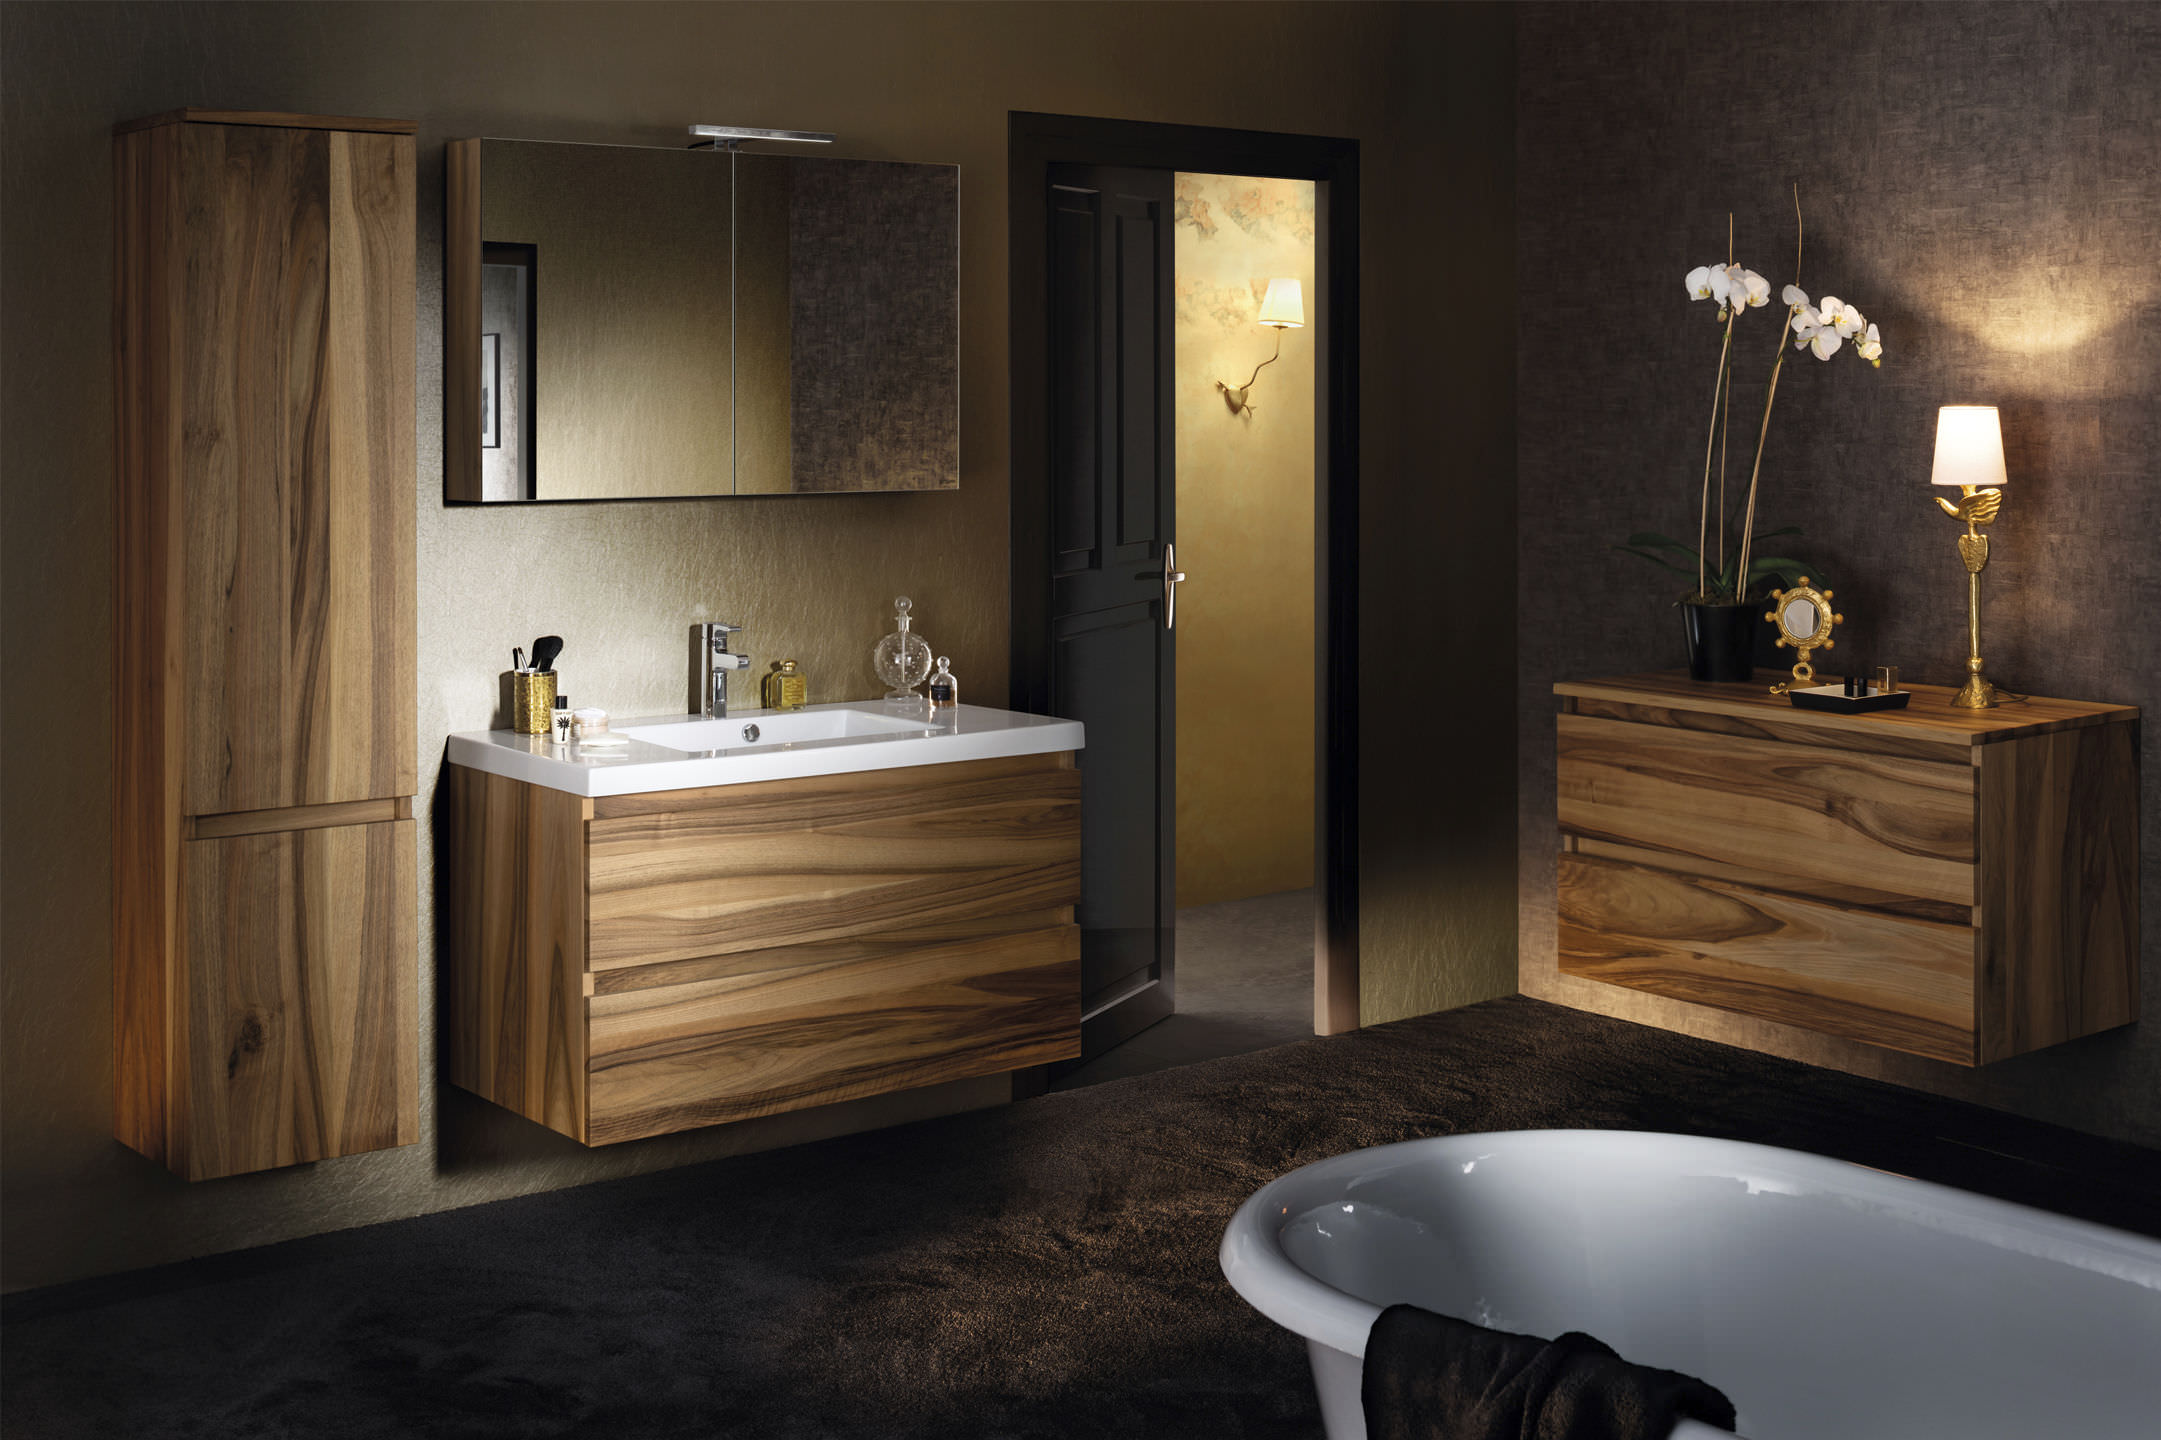 Bathroom base cabinet   wall mounted LIGNUM SANIJURA. Bathroom base cabinet   wall mounted   LIGNUM   SANIJURA